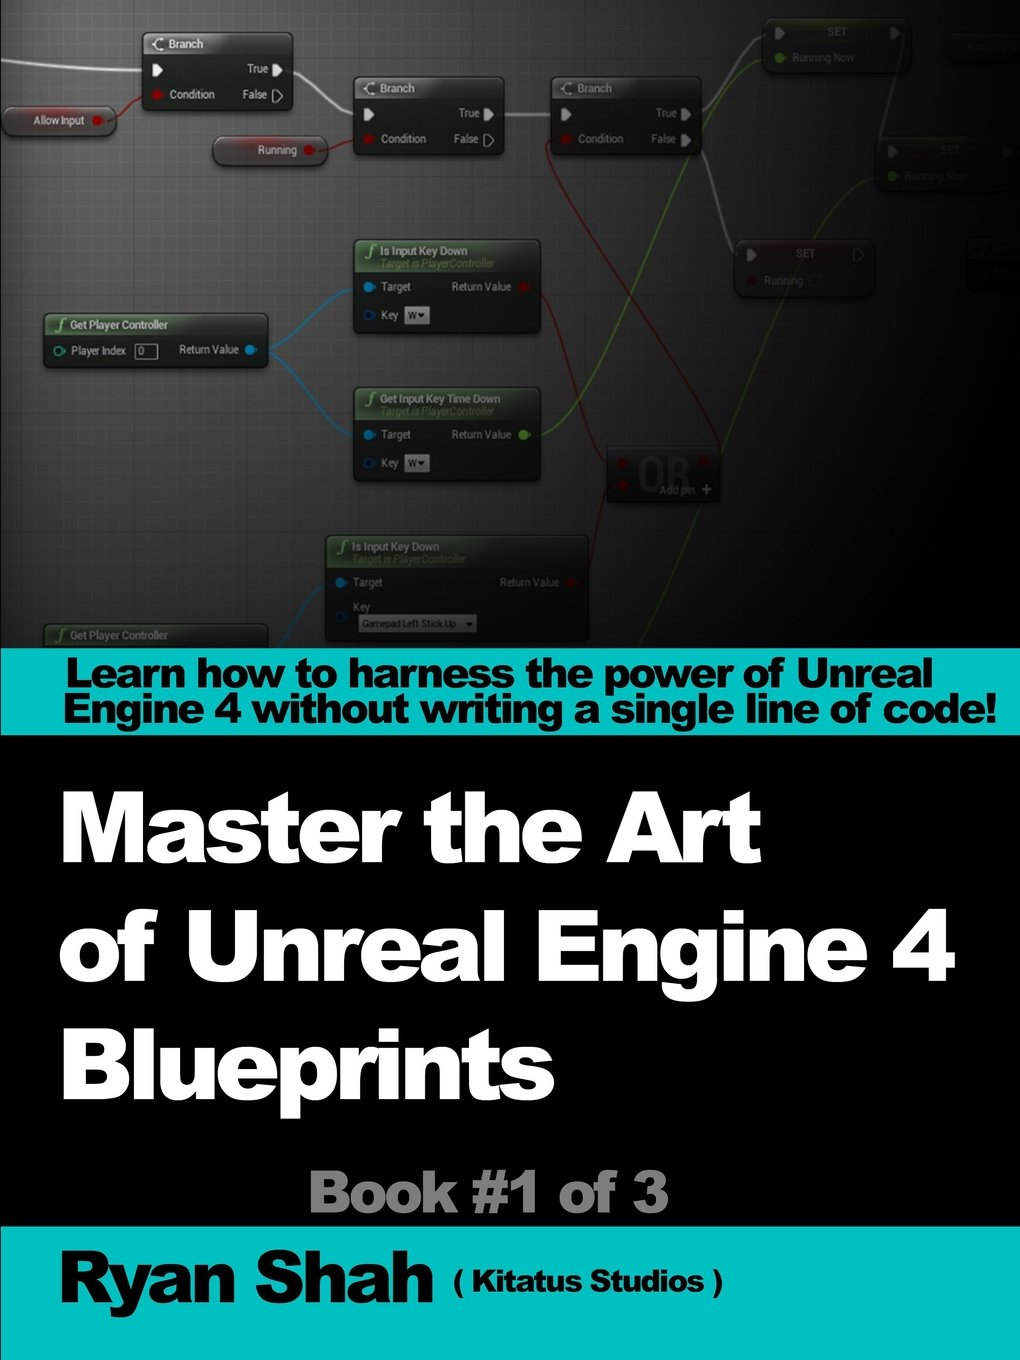 Mastering the Art of Unreal Engine 4 - Blueprints: Amazon co uk